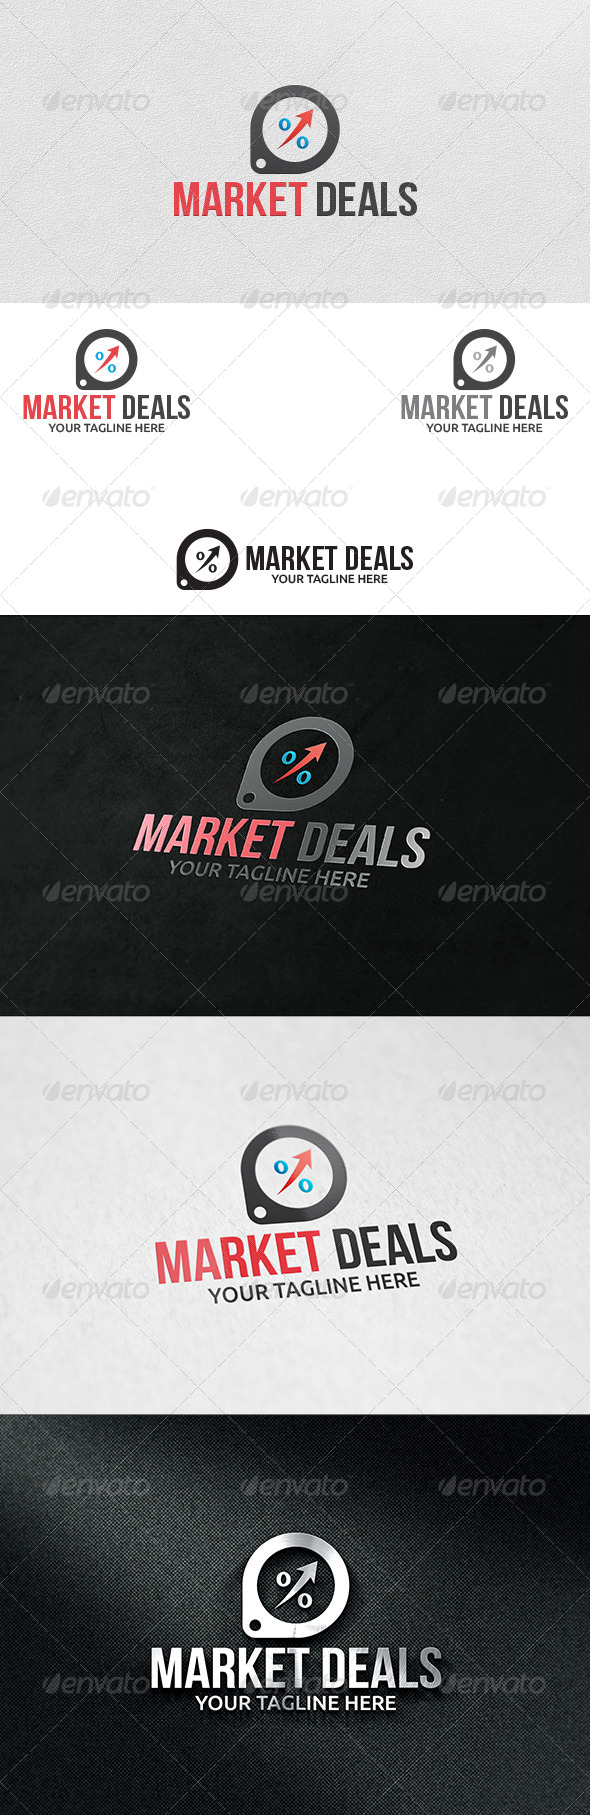 GraphicRiver Market Deals Logo Template 6252383